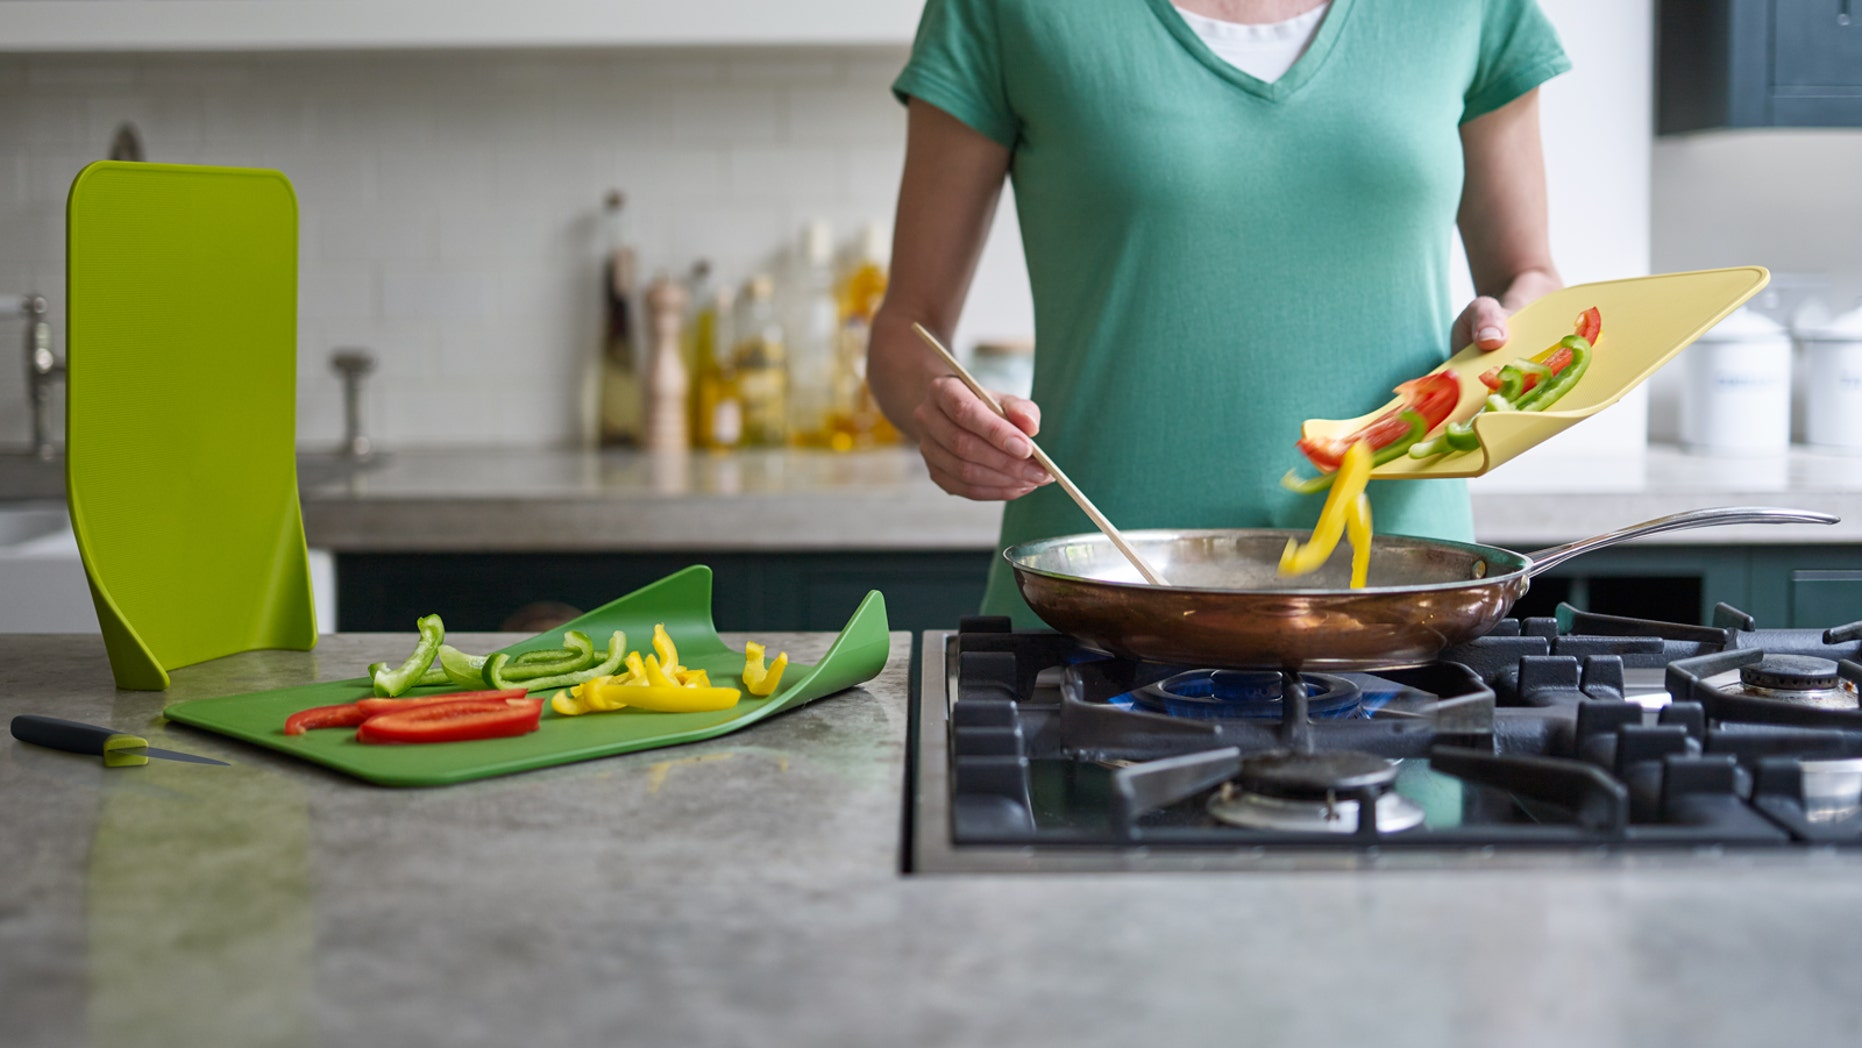 If mom's a foodie, she's gonna love these cool kitchen tools.